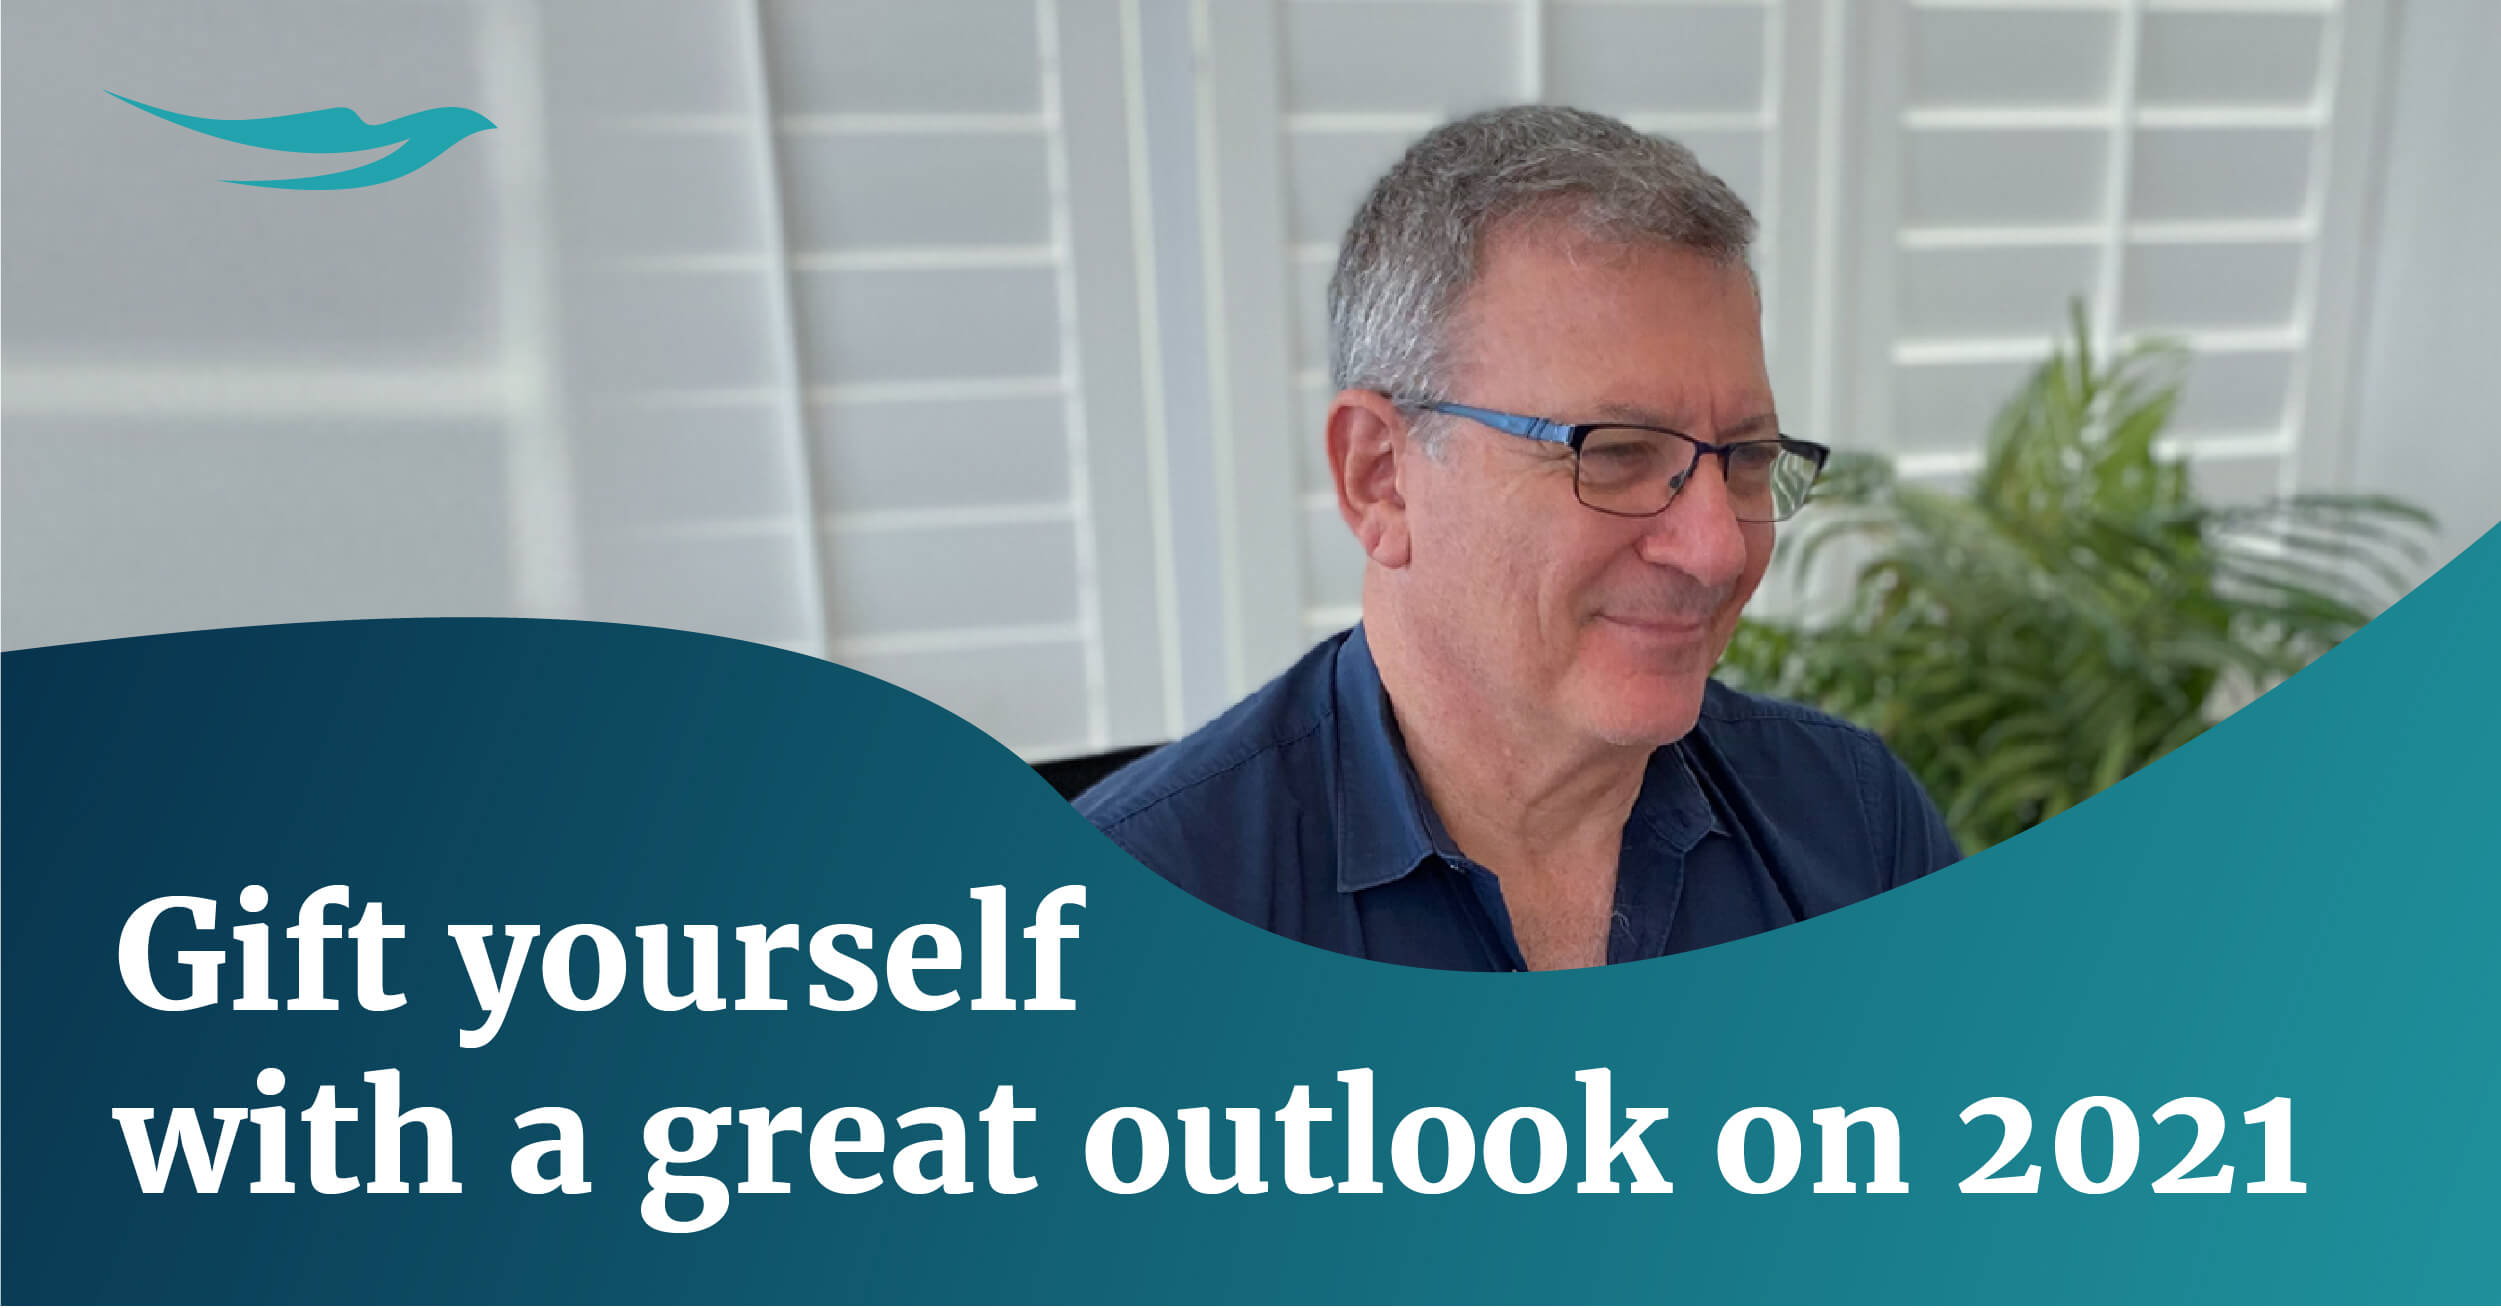 Gift yourself a great outlook on 2021